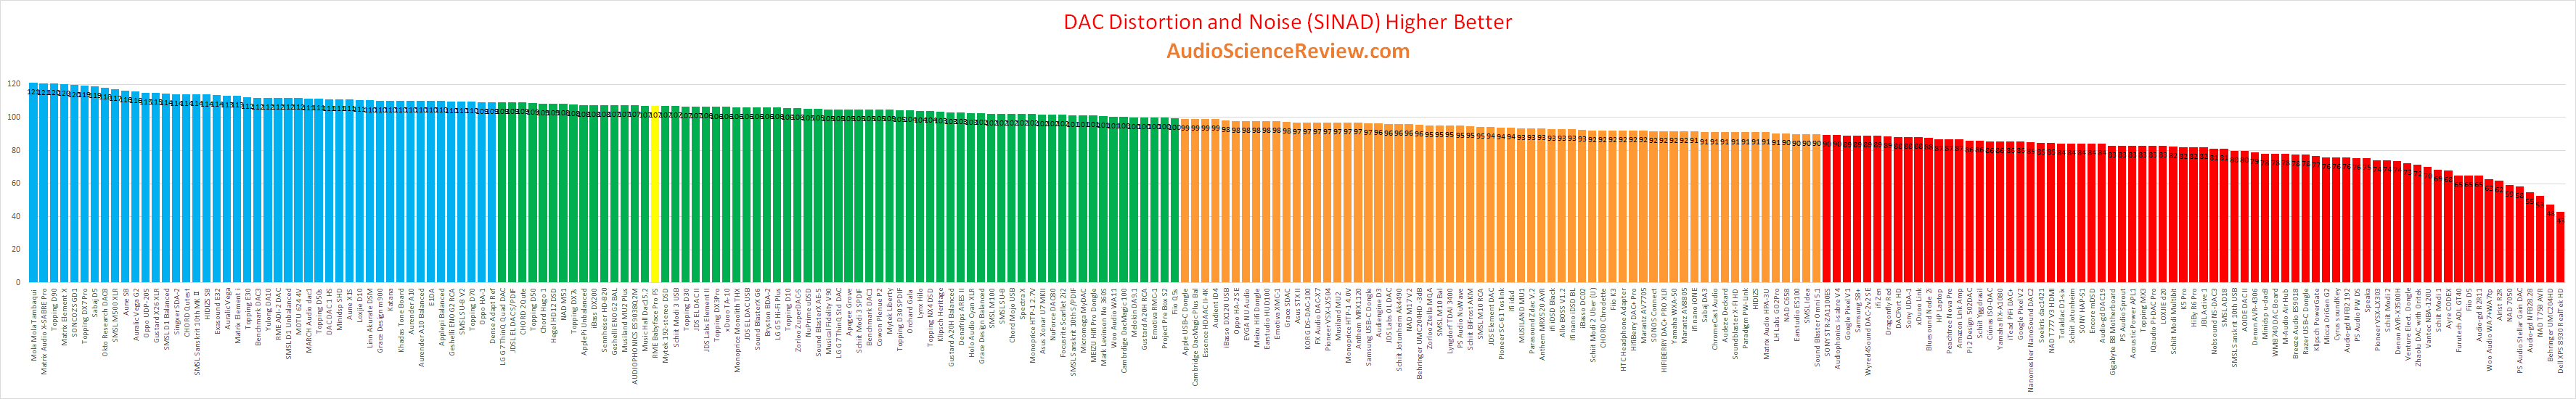 Best Audio Interface DAC Performance Review.png